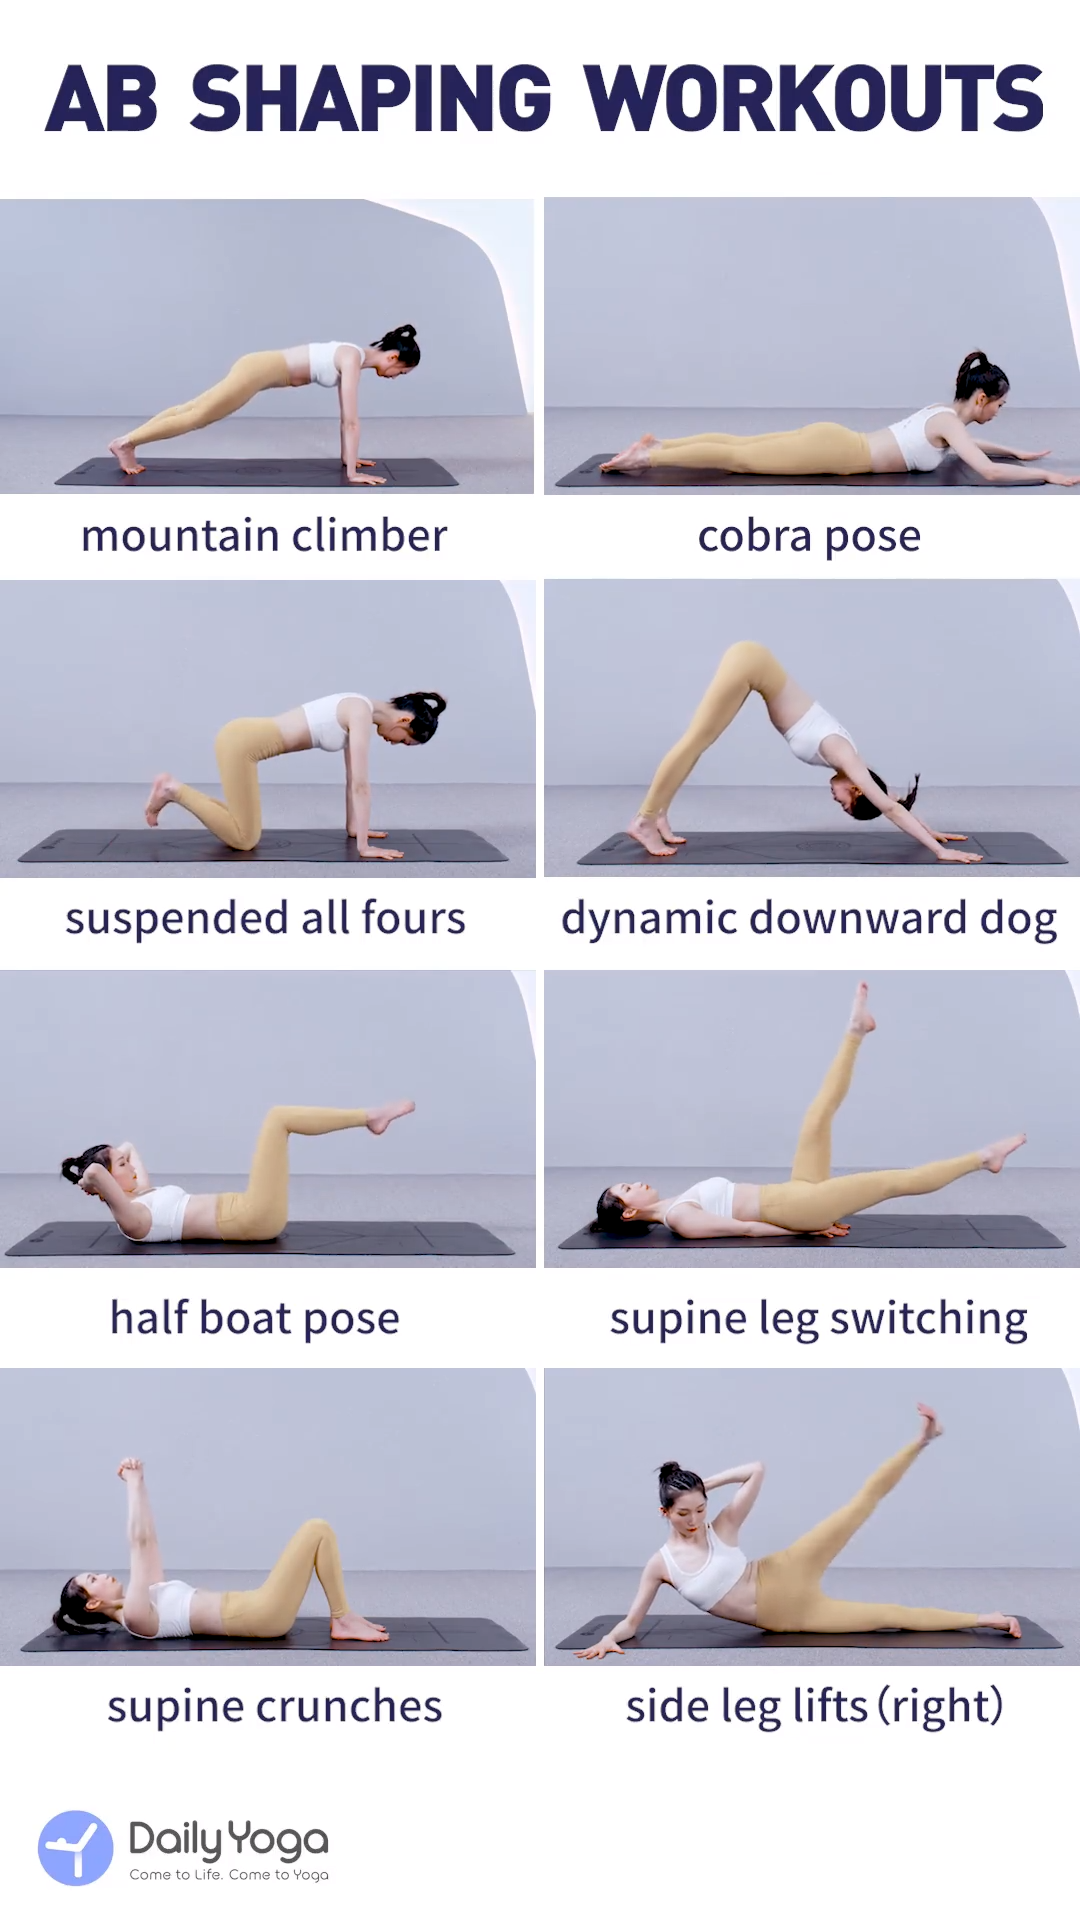 DailyYogaApp| AB Shaping Workouts